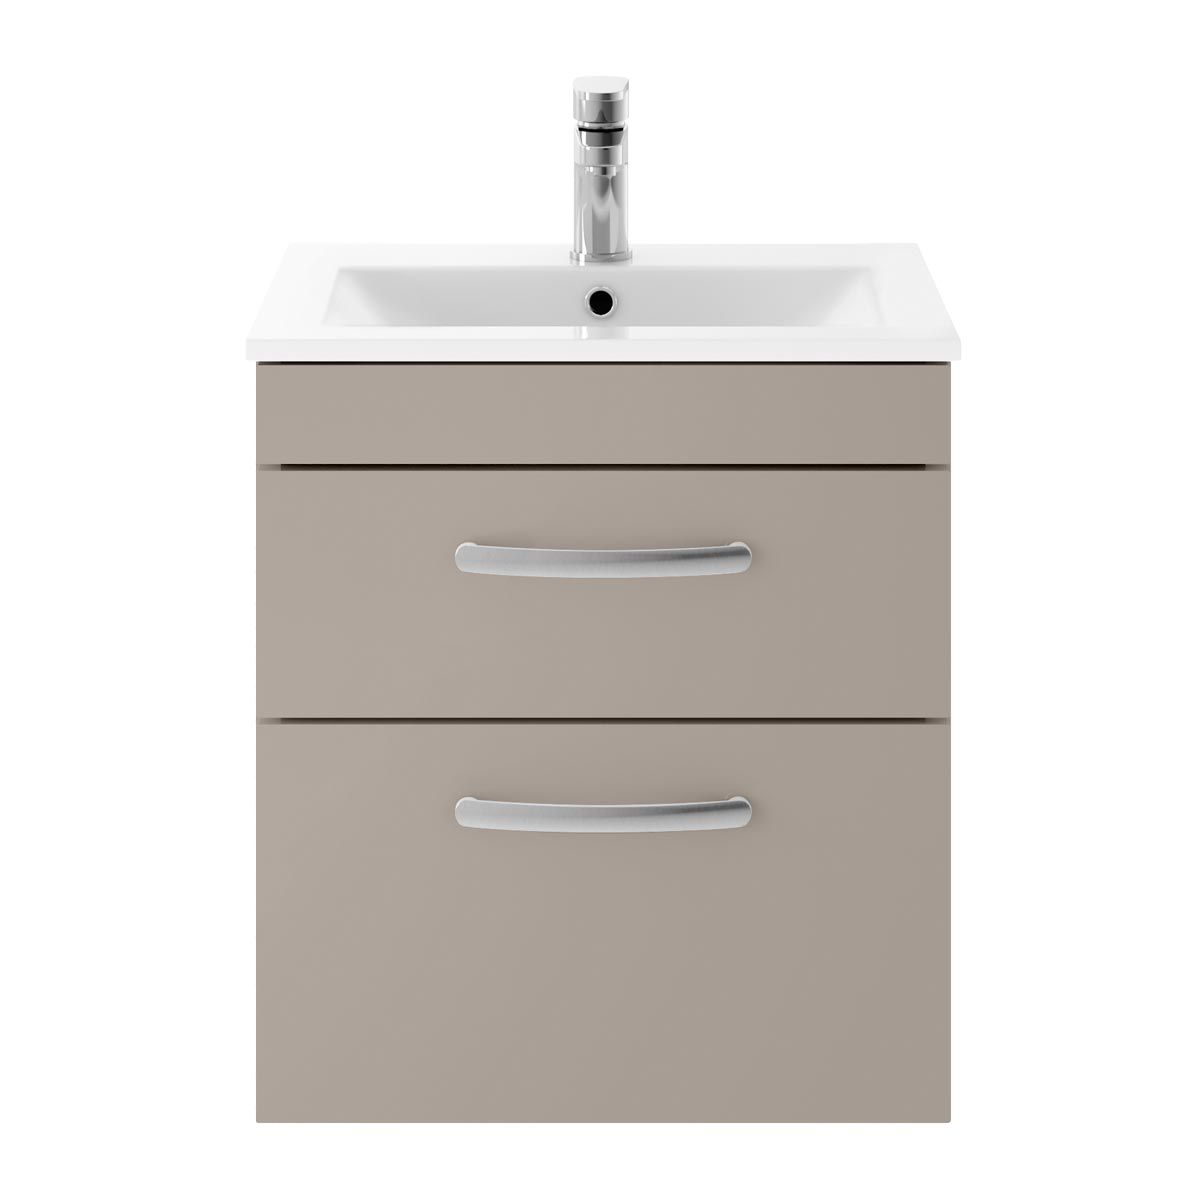 Nuie Athena Stone Grey 2 Drawer Wall Hung Vanity Unit with 18mm Profile Basin 500mm